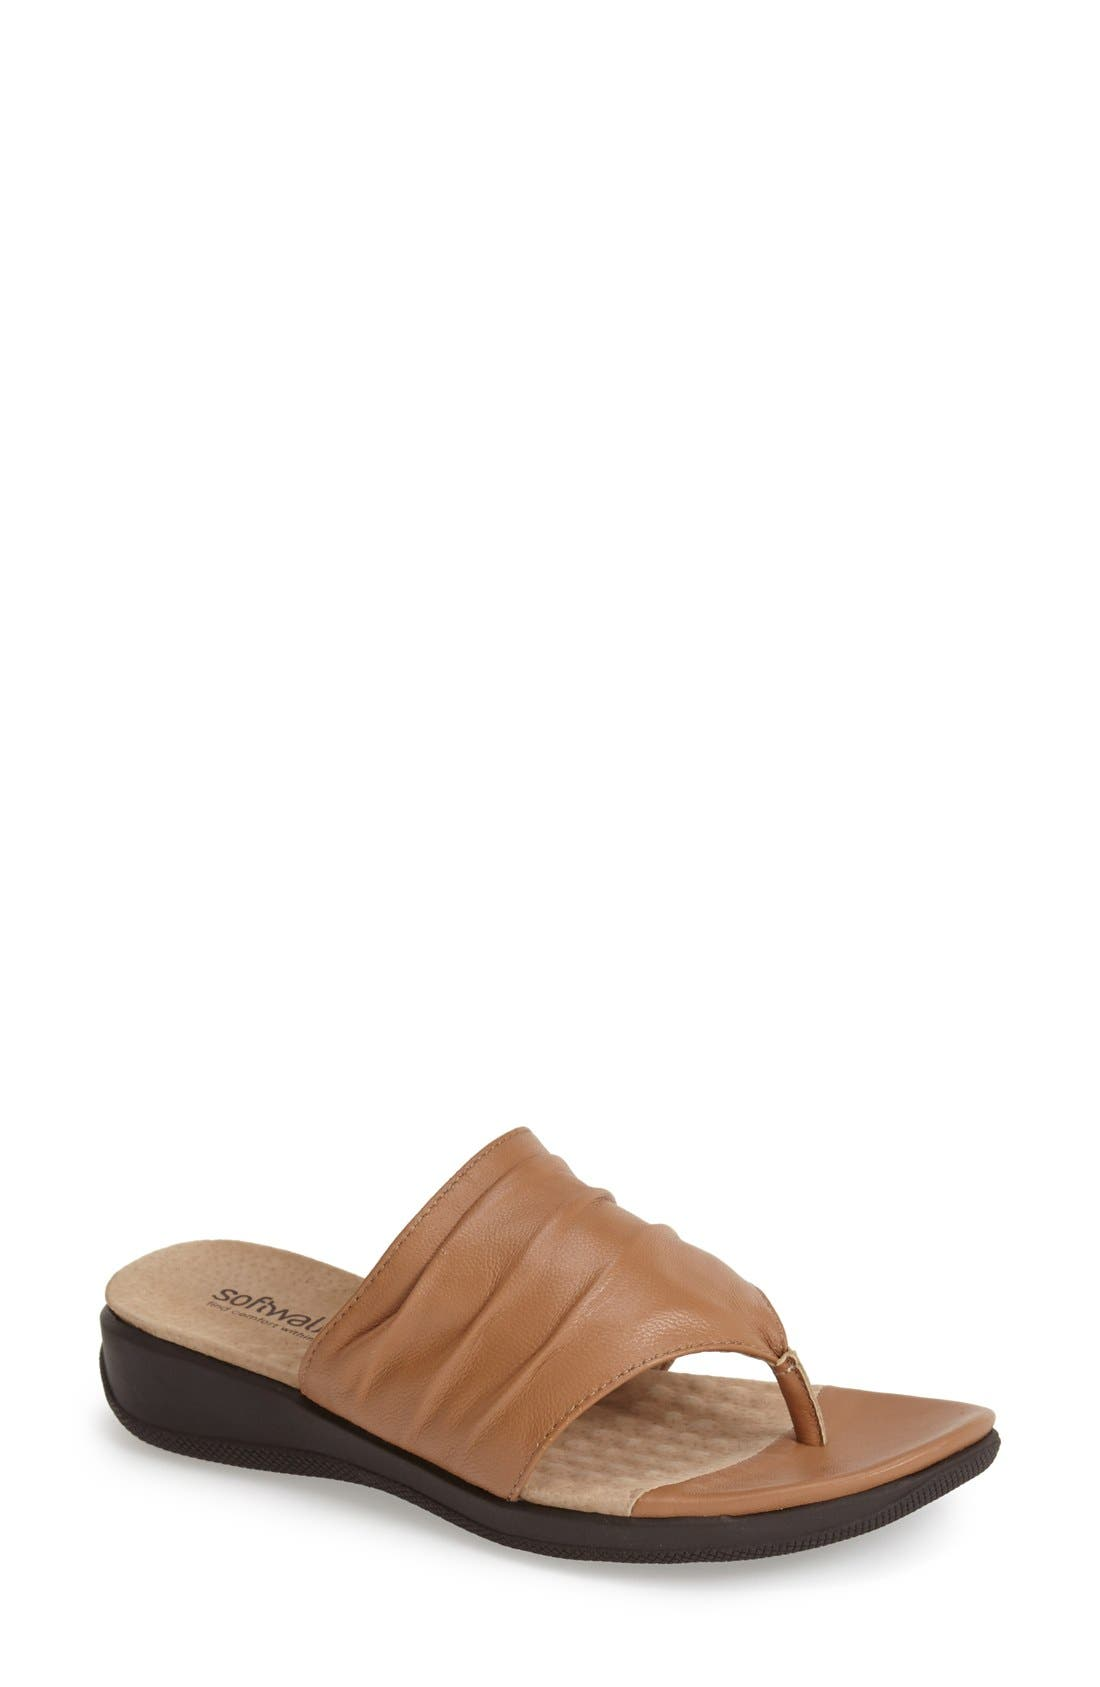 'Toma' Thong Sandal,                         Main,                         color, Tan